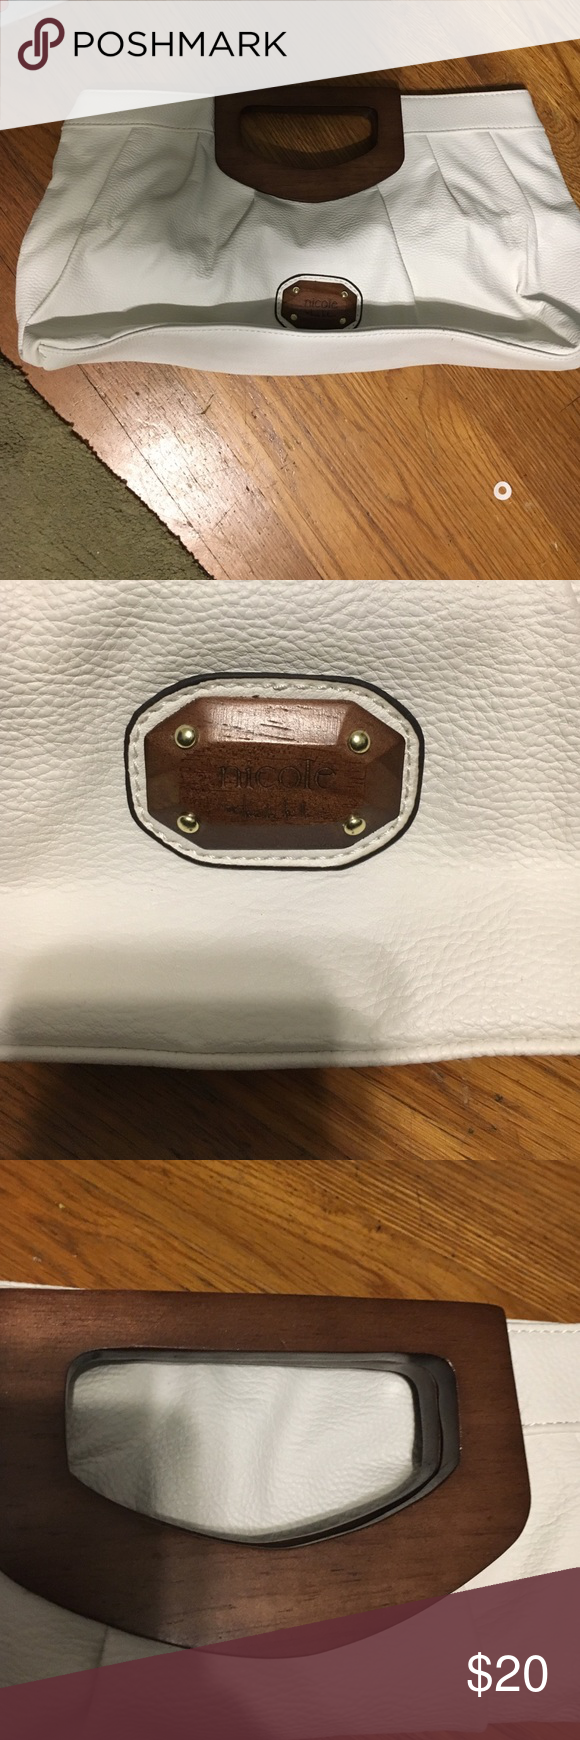 Nicole Miller white bag Used once super cute large inside with pockets Nicole by Nicole Miller Bags Clutches & Wristlets